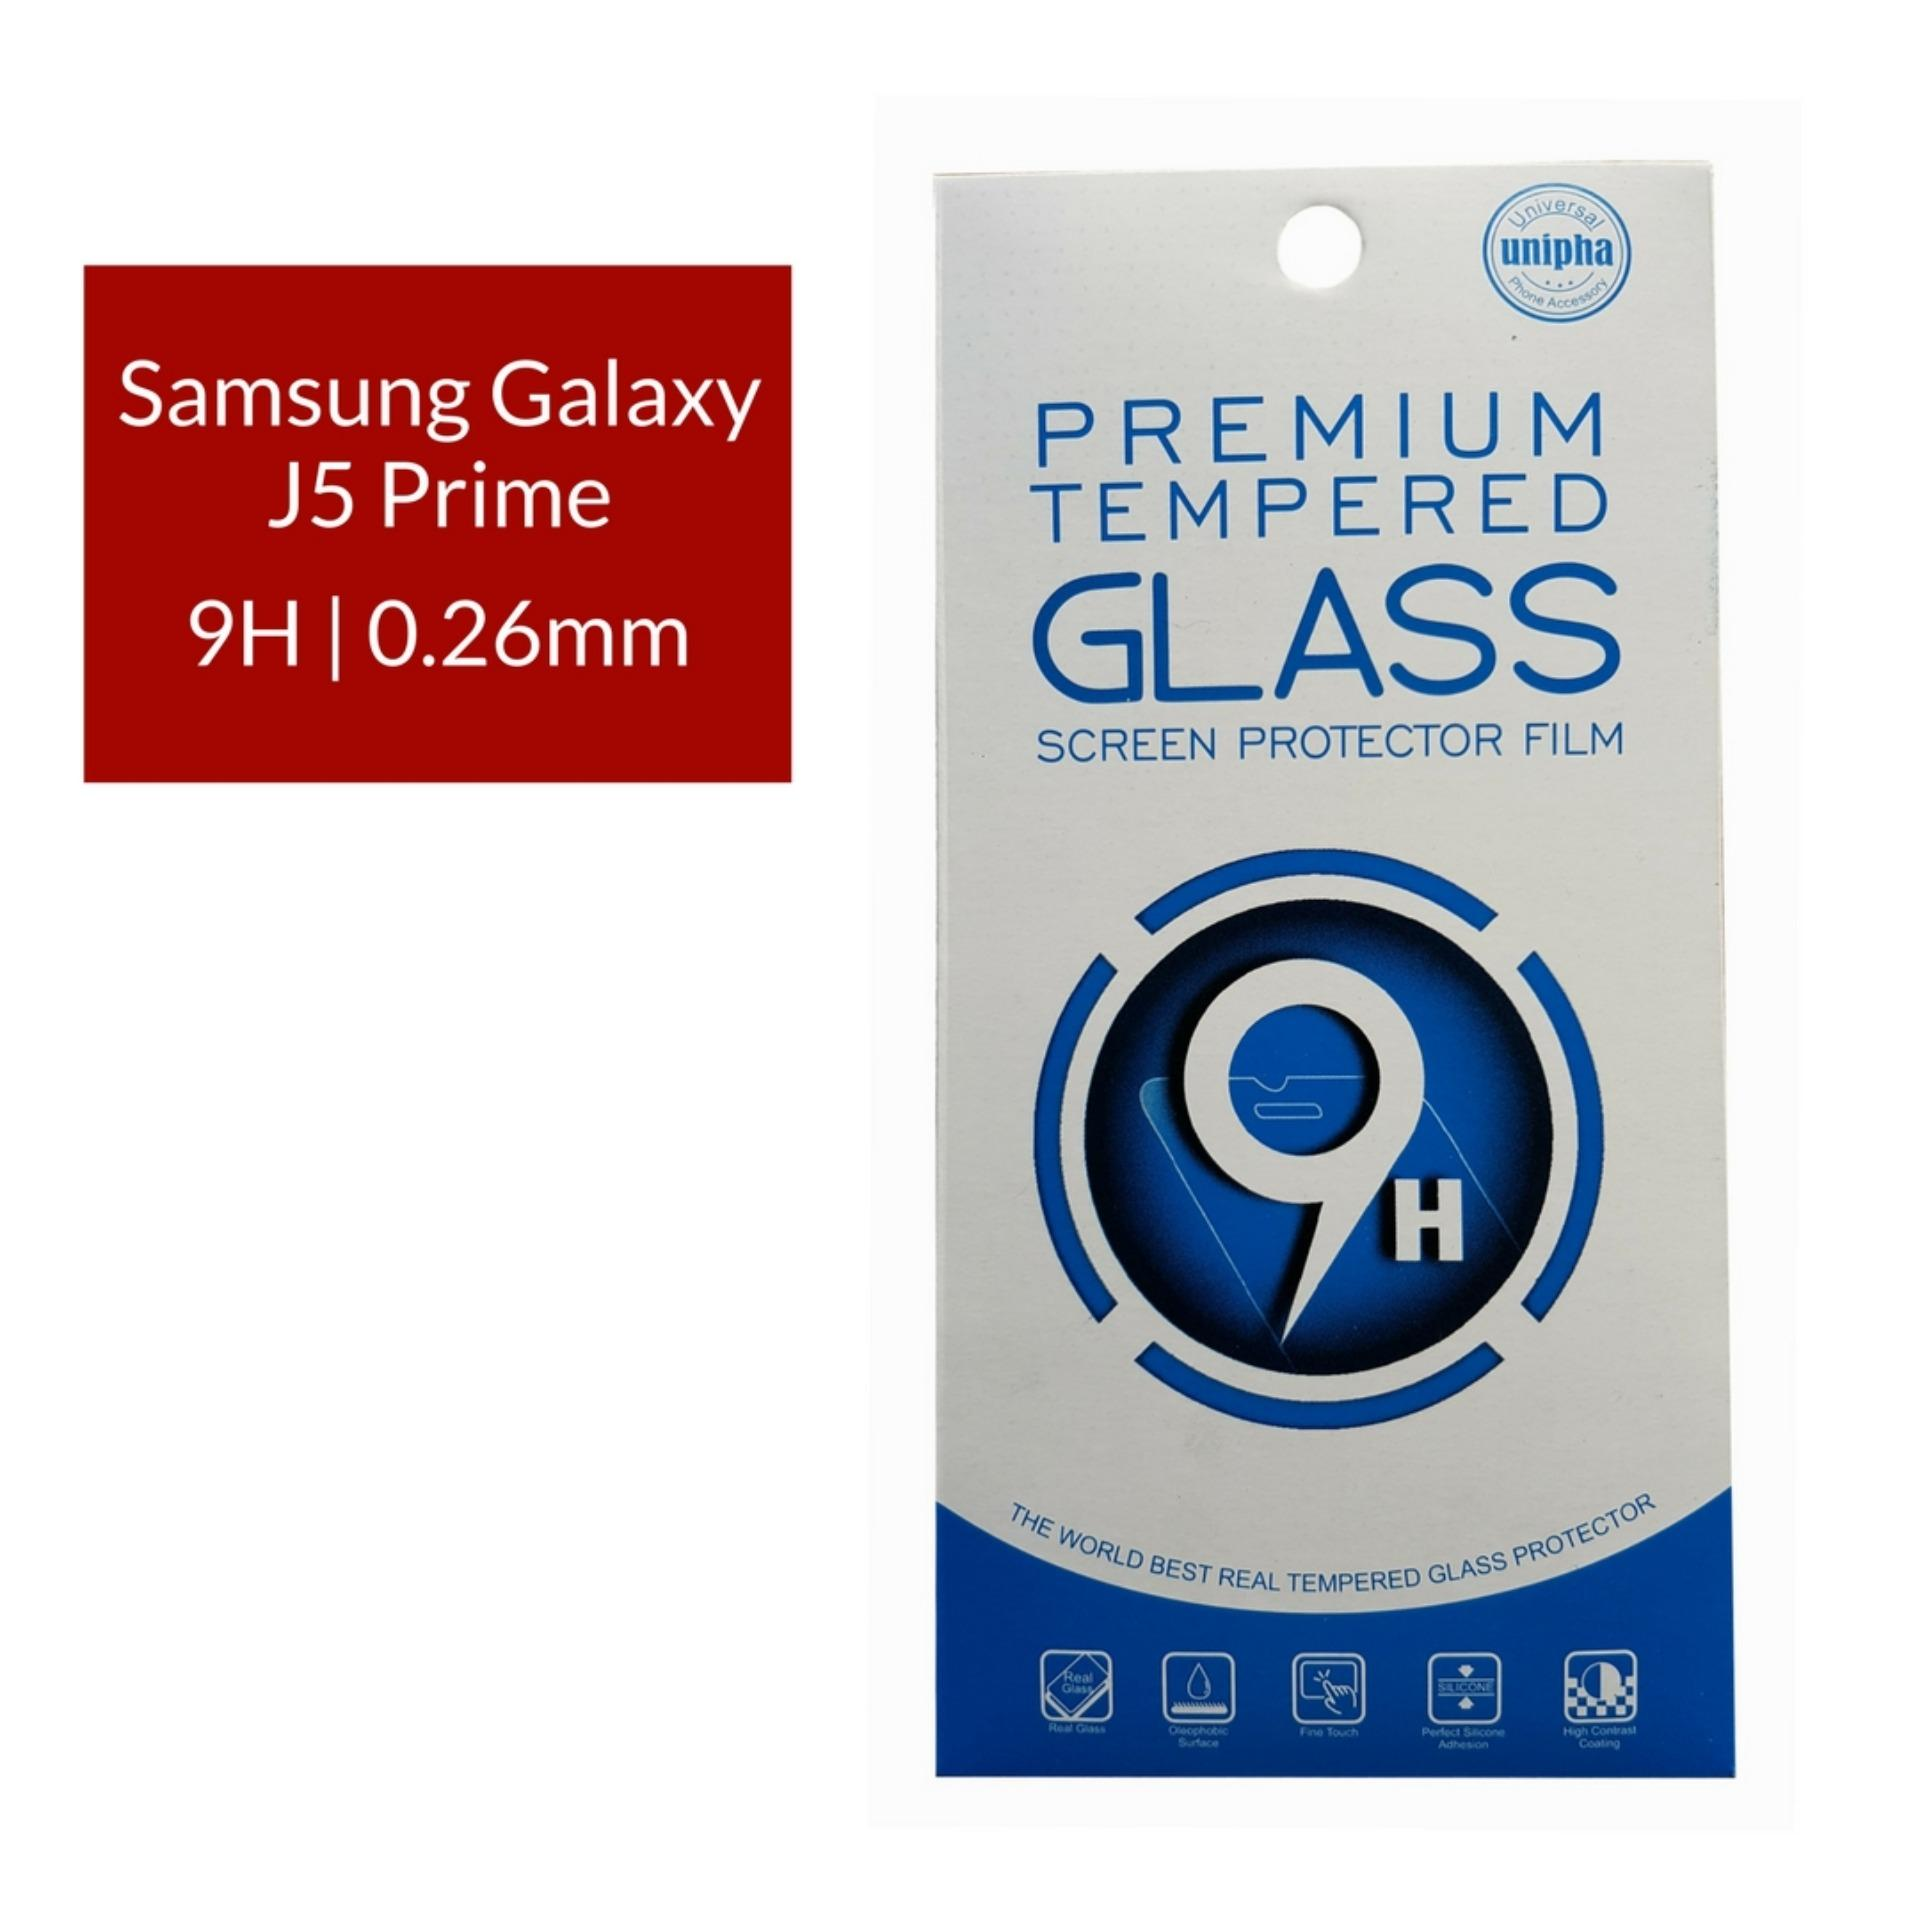 Unipha Premium Tempered Glass Screen Protector / Anti Gores Kaca Samsung Galaxy J5 Prime - Bening